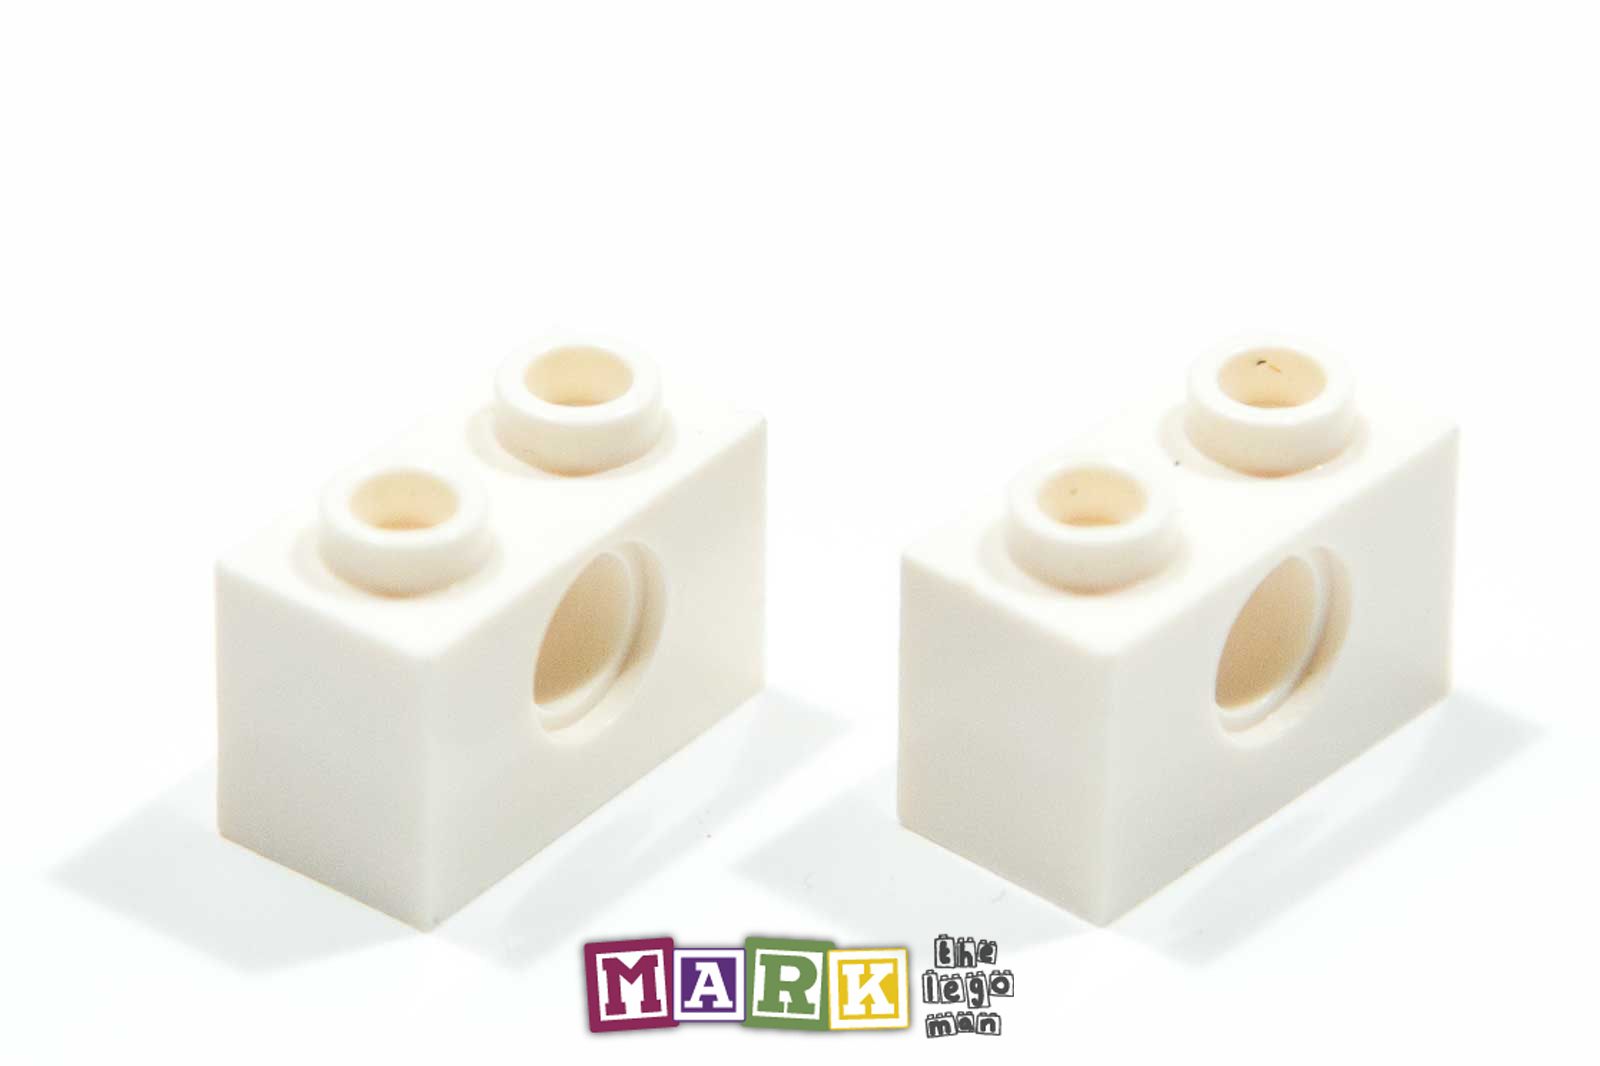 Pack of 2 Lego 3700 1x2 Technic Brick with hole 370001